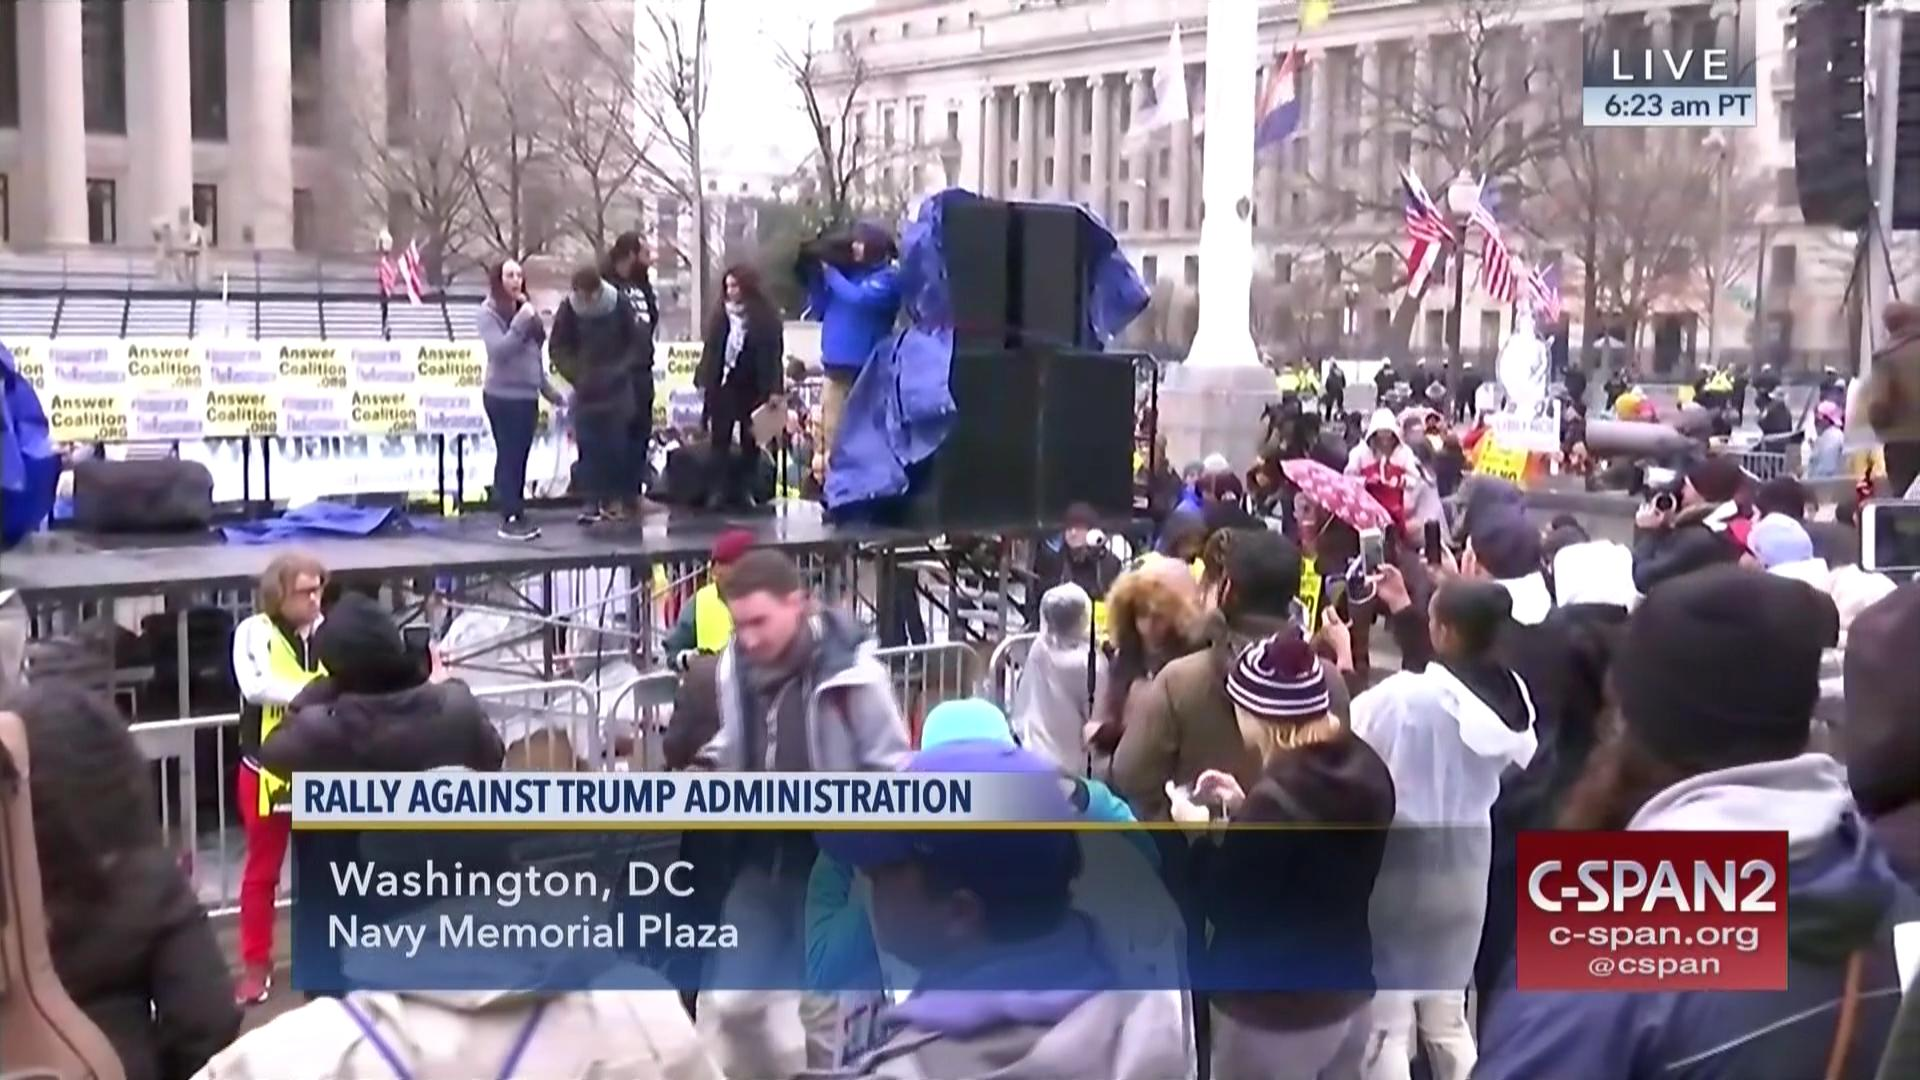 answer coalition holds protest rally video c span org